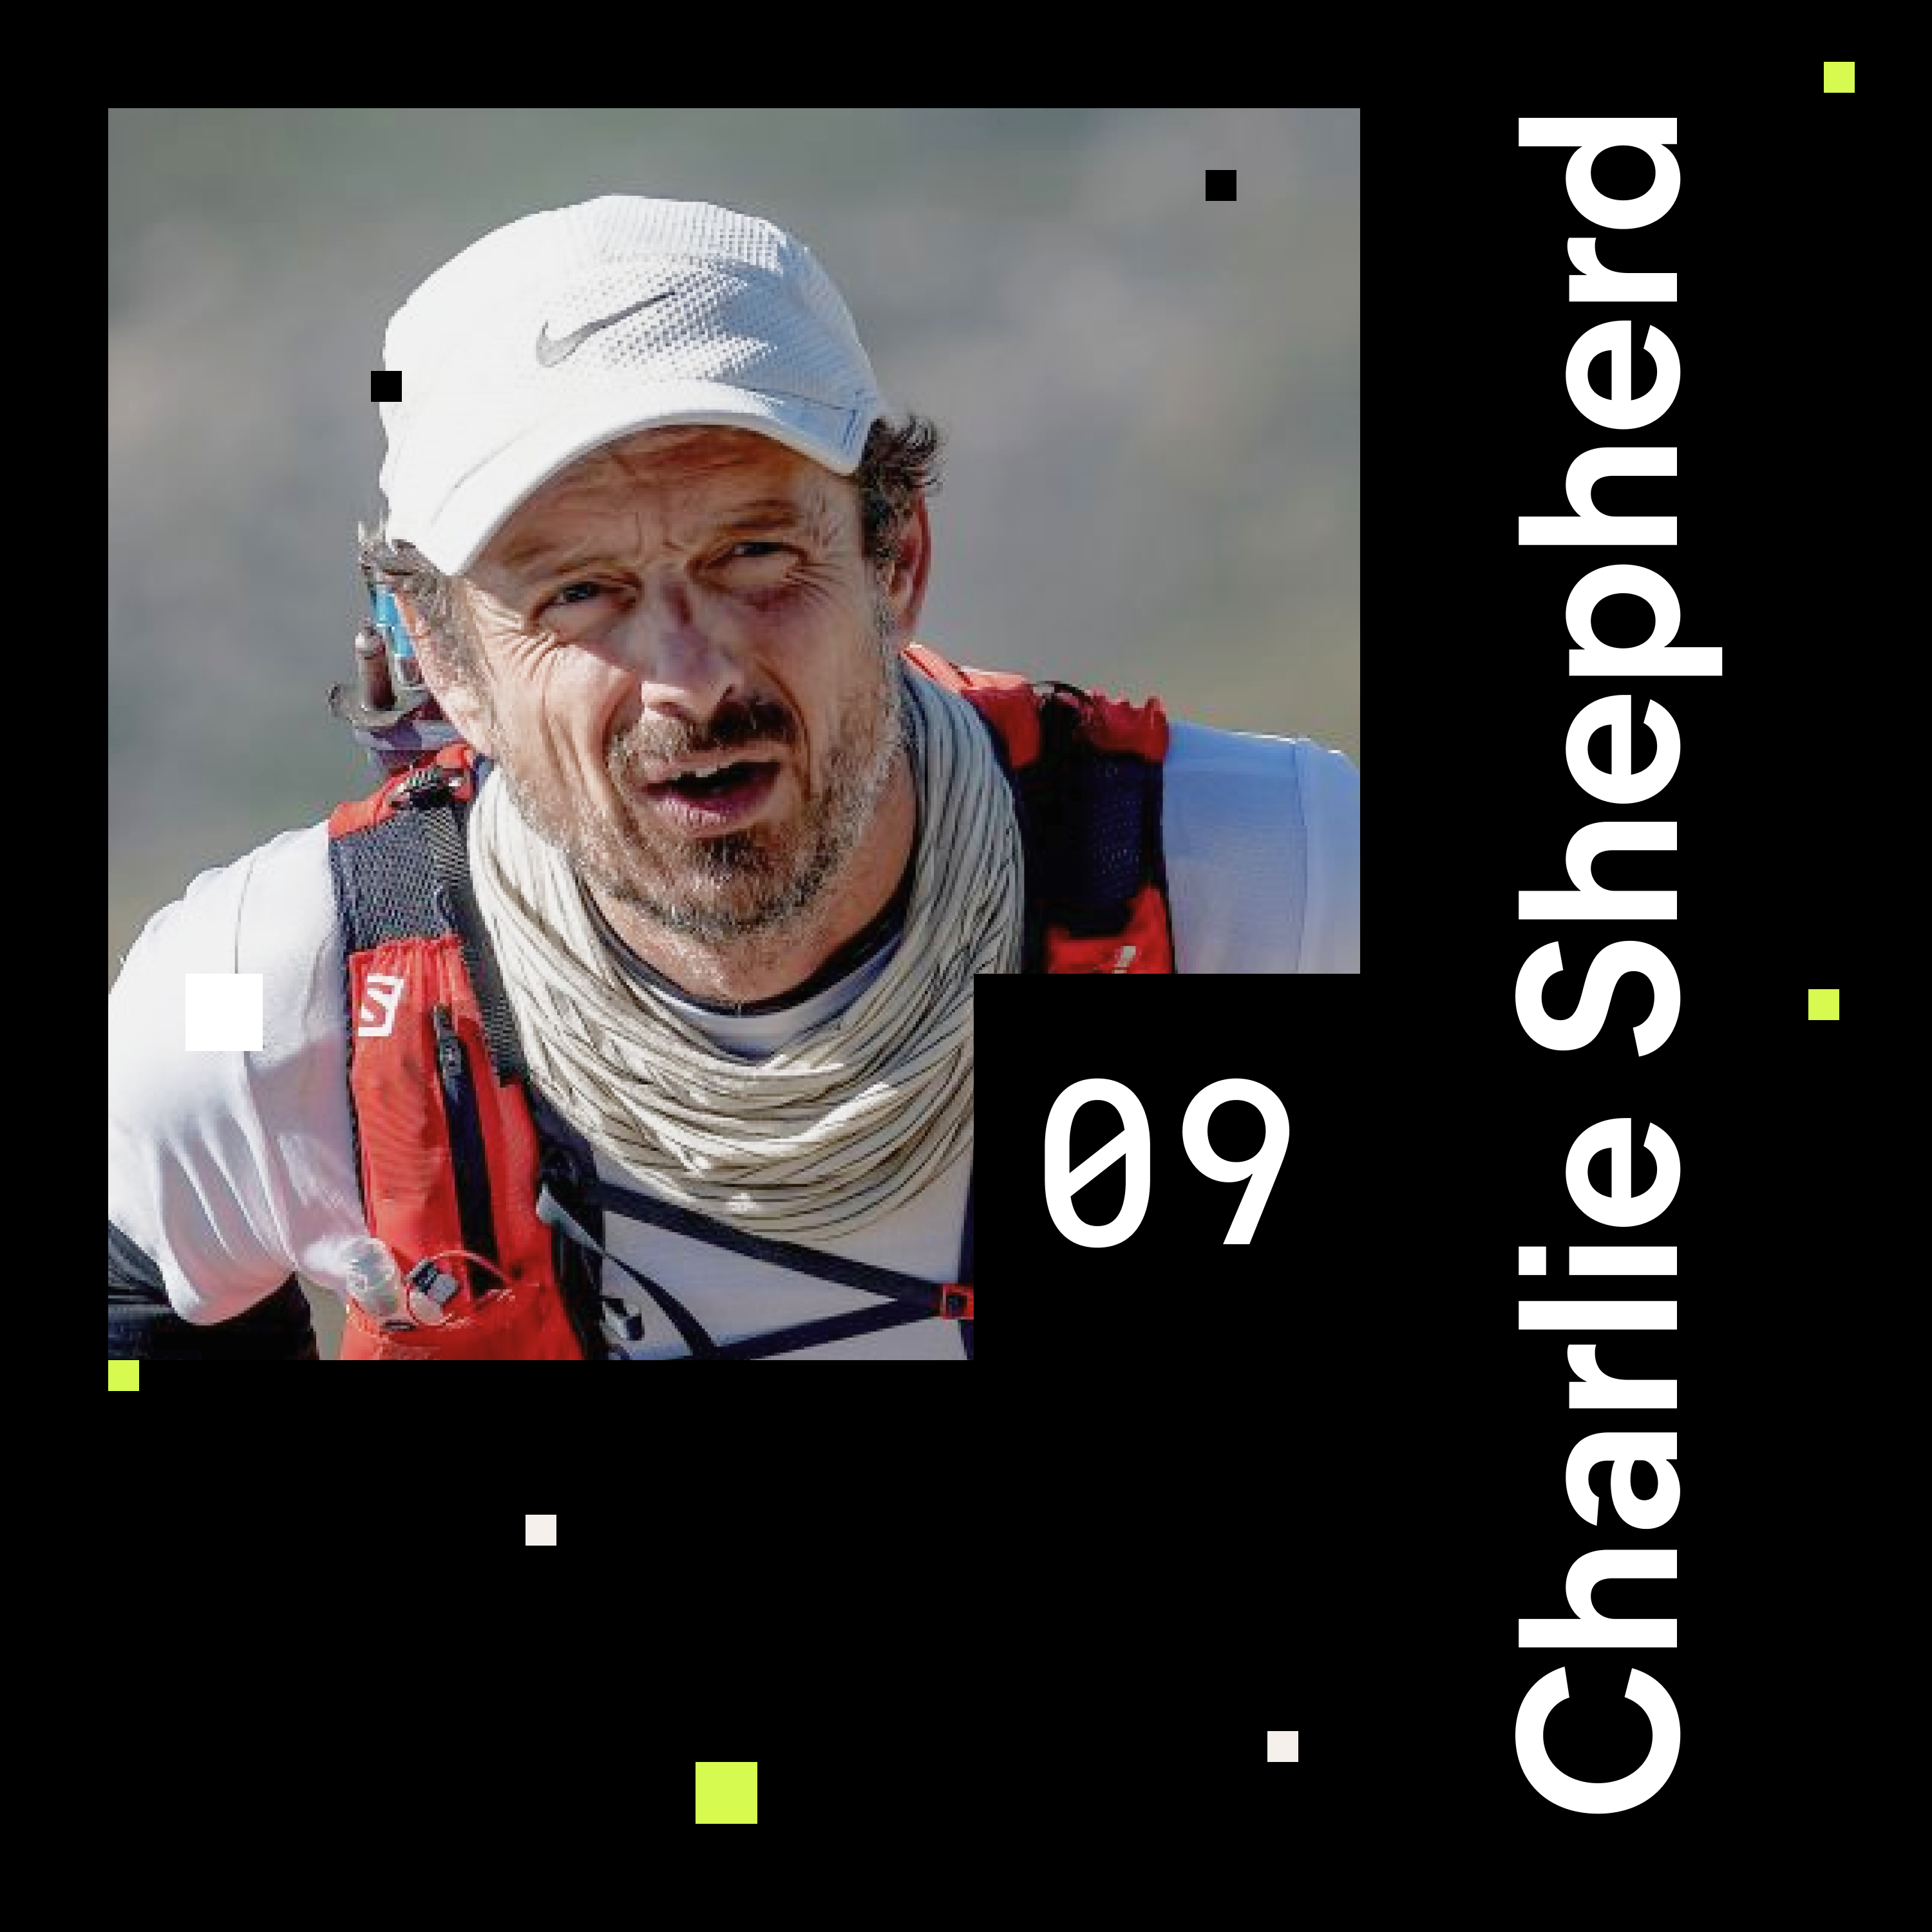 Chalie Shepherd portrait while ultra running. Cover of episode 9 of the shaping chaos podcast.